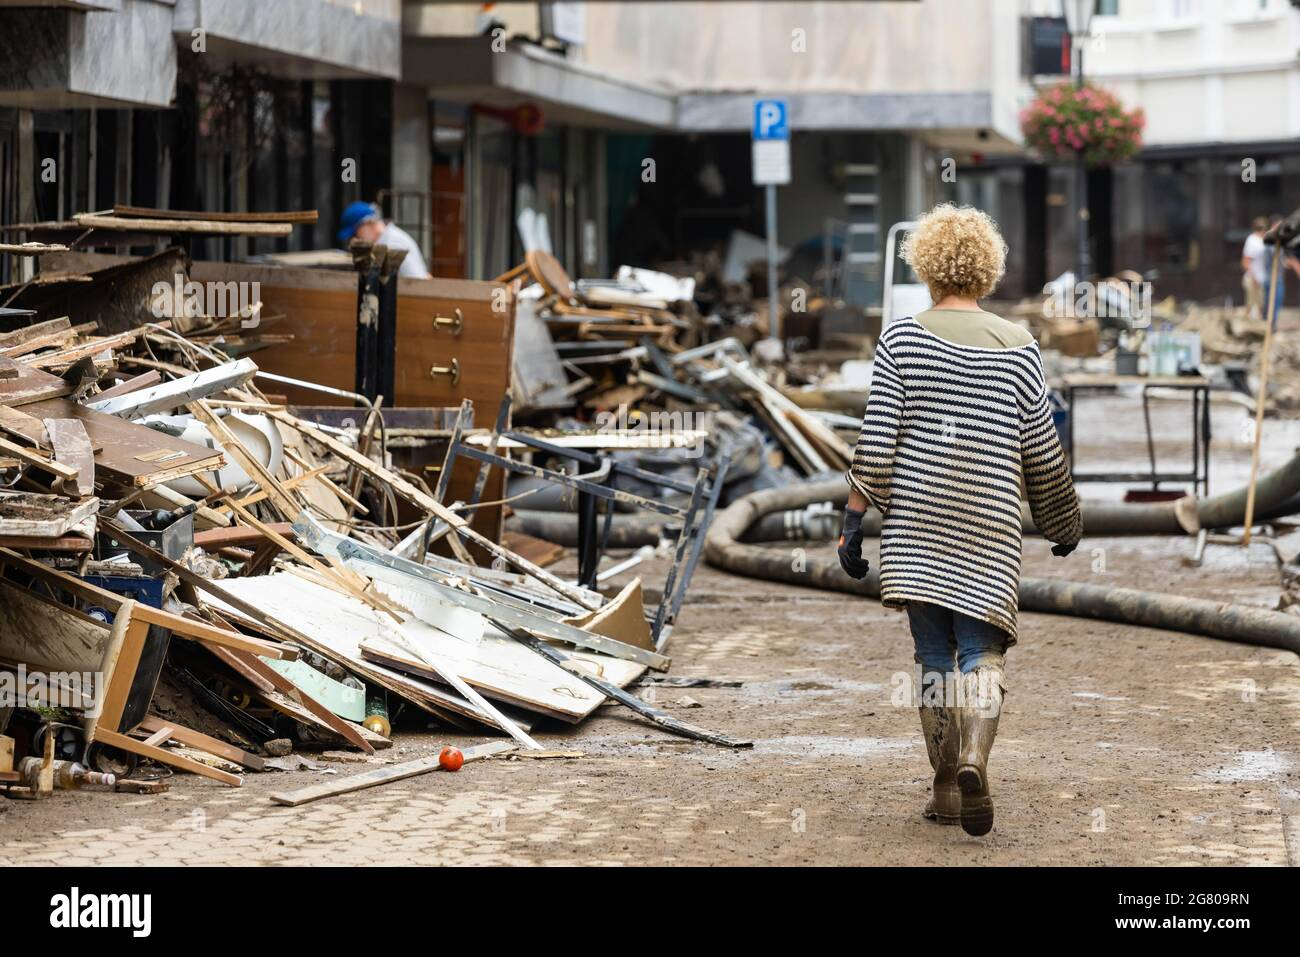 Bad Neuenahr, Germany. 16th July, 2021. A woman filthy with mud walks past a pile of rubble. Objects from a house. Massive rainfall has caused flooding in Bad Neuenahr in Rhineland-Palatinate as well as in the whole district of Ahrweiler. Credit: Philipp von Ditfurth/dpa/Alamy Live News Stock Photo